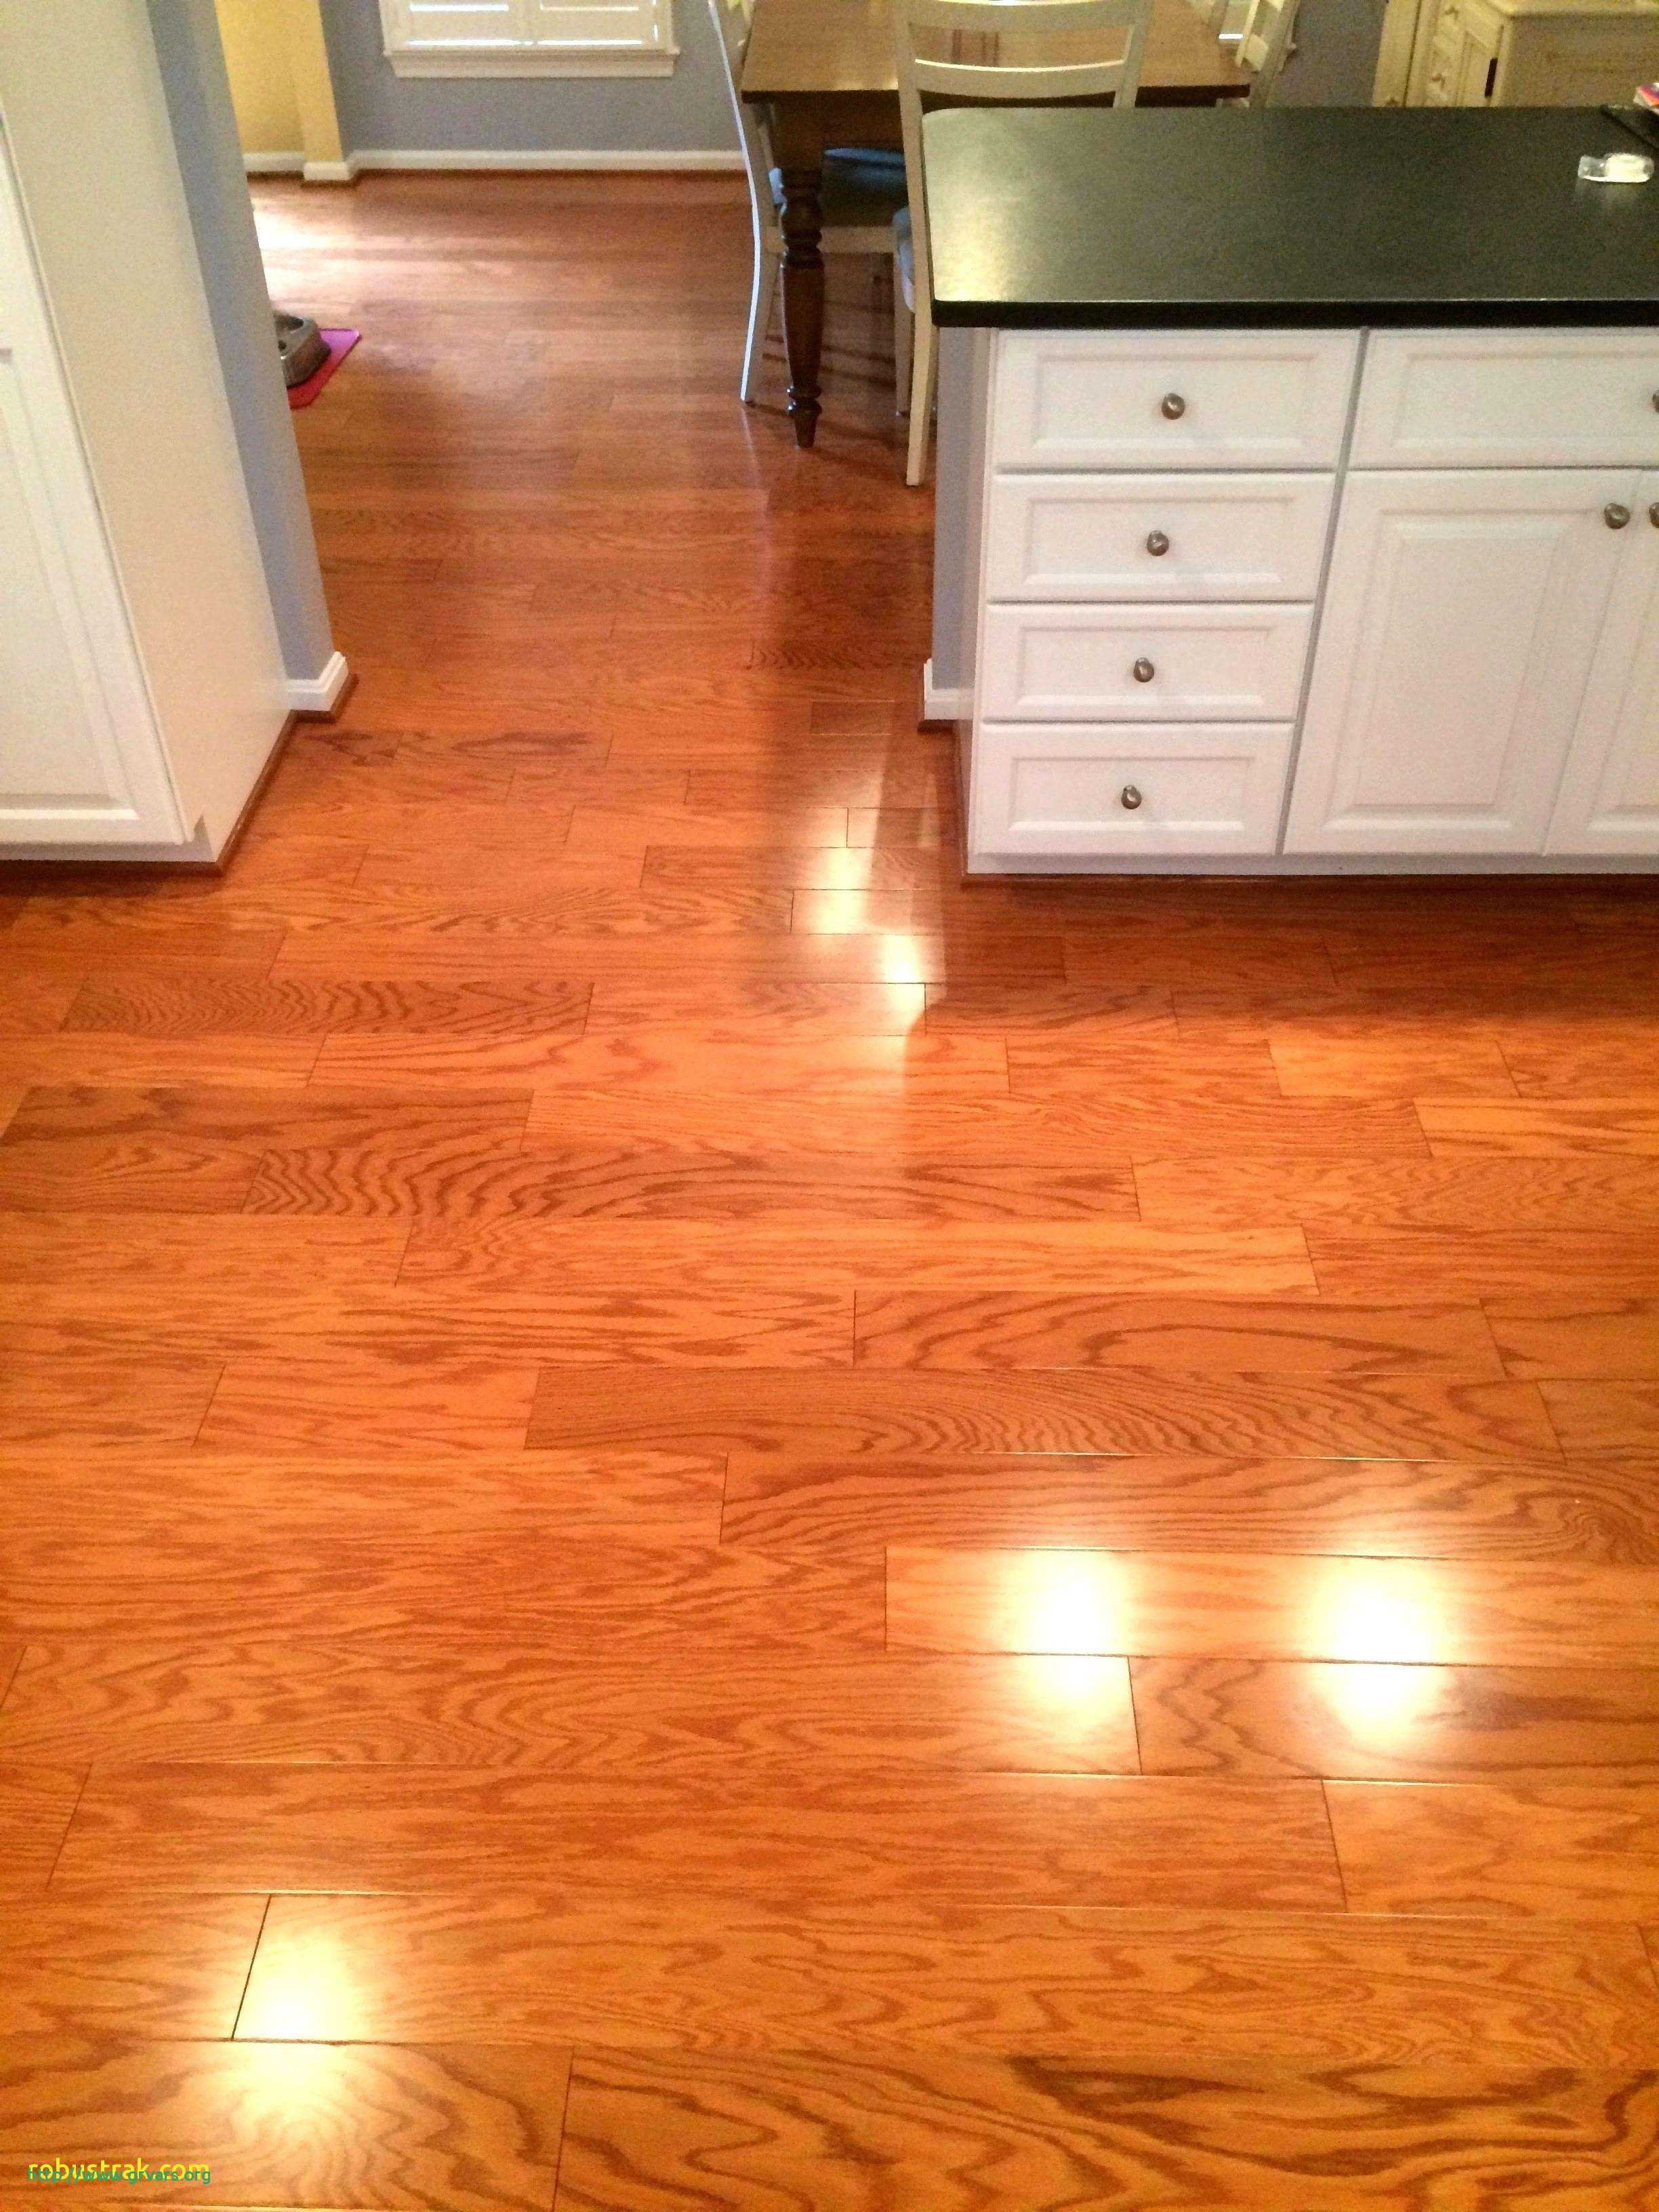 can hand scraped hardwood floors be refinished of 25 beau fore wood floors ideas blog with hardwood floors in the kitchen fresh where to buy hardwood flooring inspirational 0d grace place barnegat